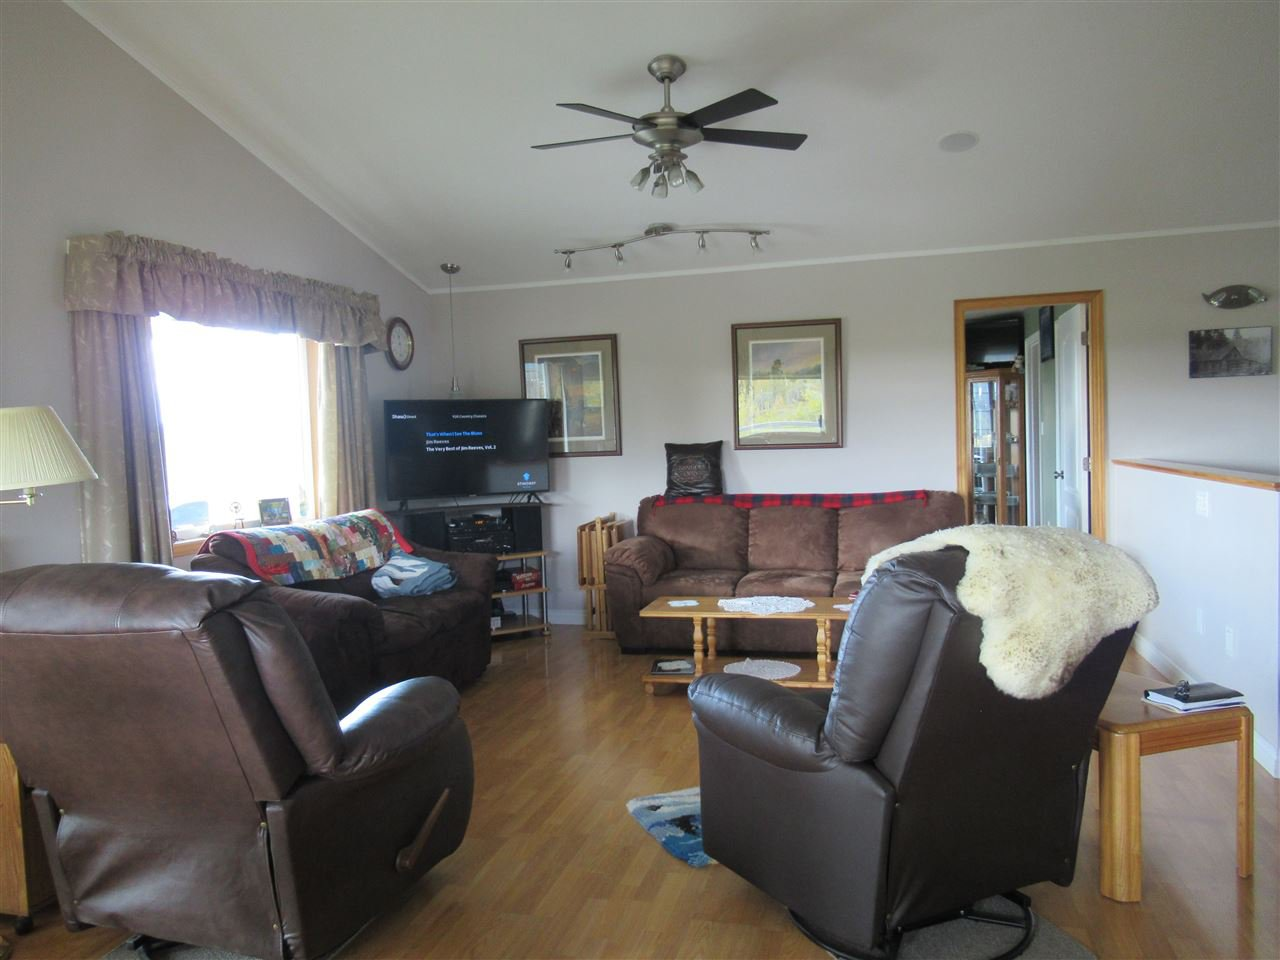 Photo 4: Photos: 2884 GOLD DIGGER Drive: 150 Mile House House for sale (Williams Lake (Zone 27))  : MLS®# R2409553